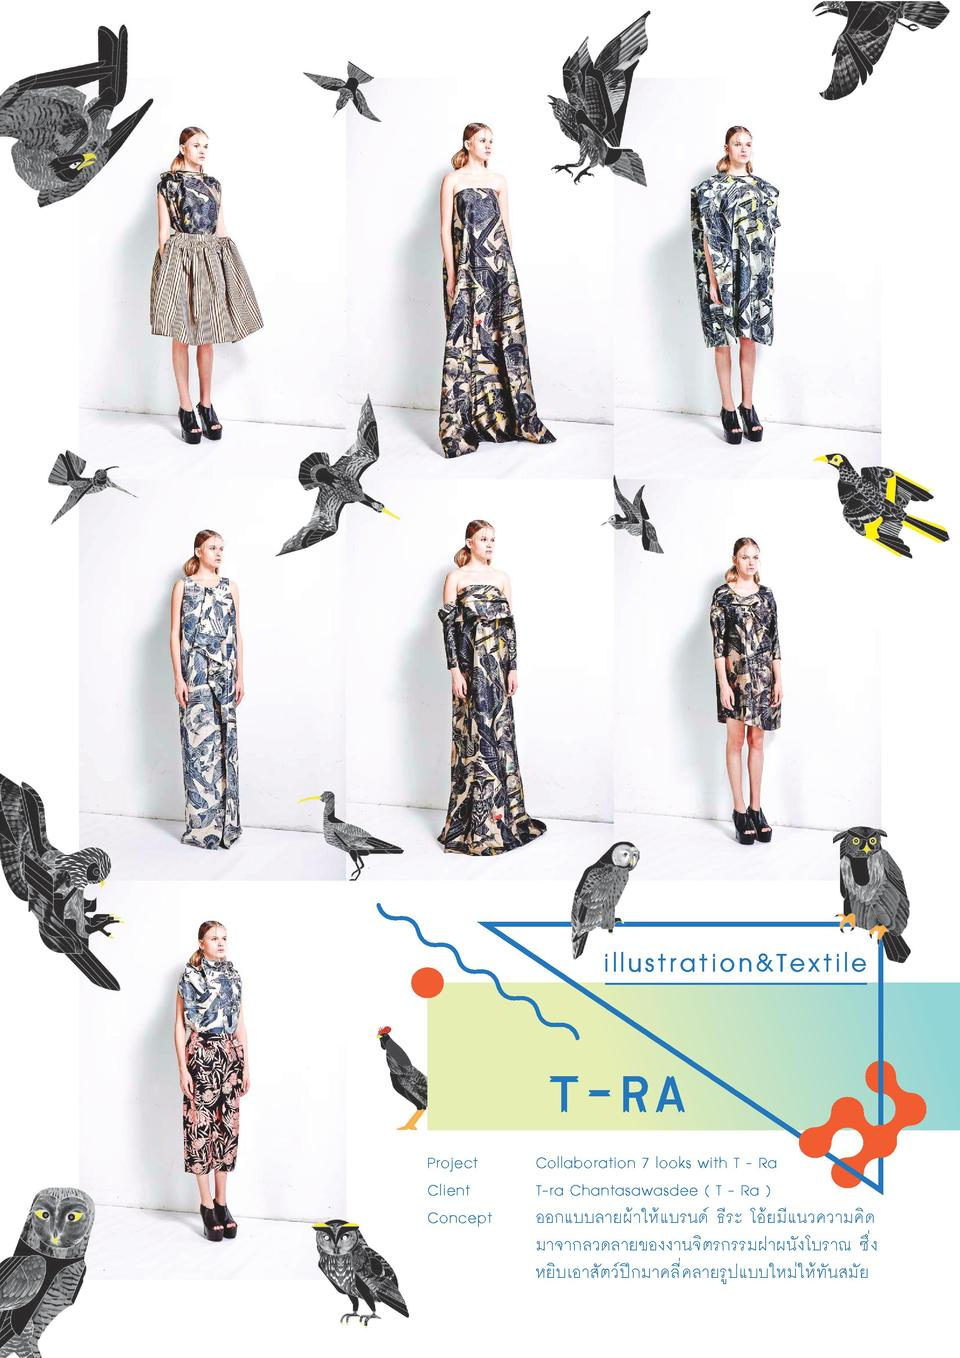 illustration Textile  t-ra Project Client Concept  Collaboration 7 looks with T - Ra T-ra Chantasawasdee   T - Ra         ...